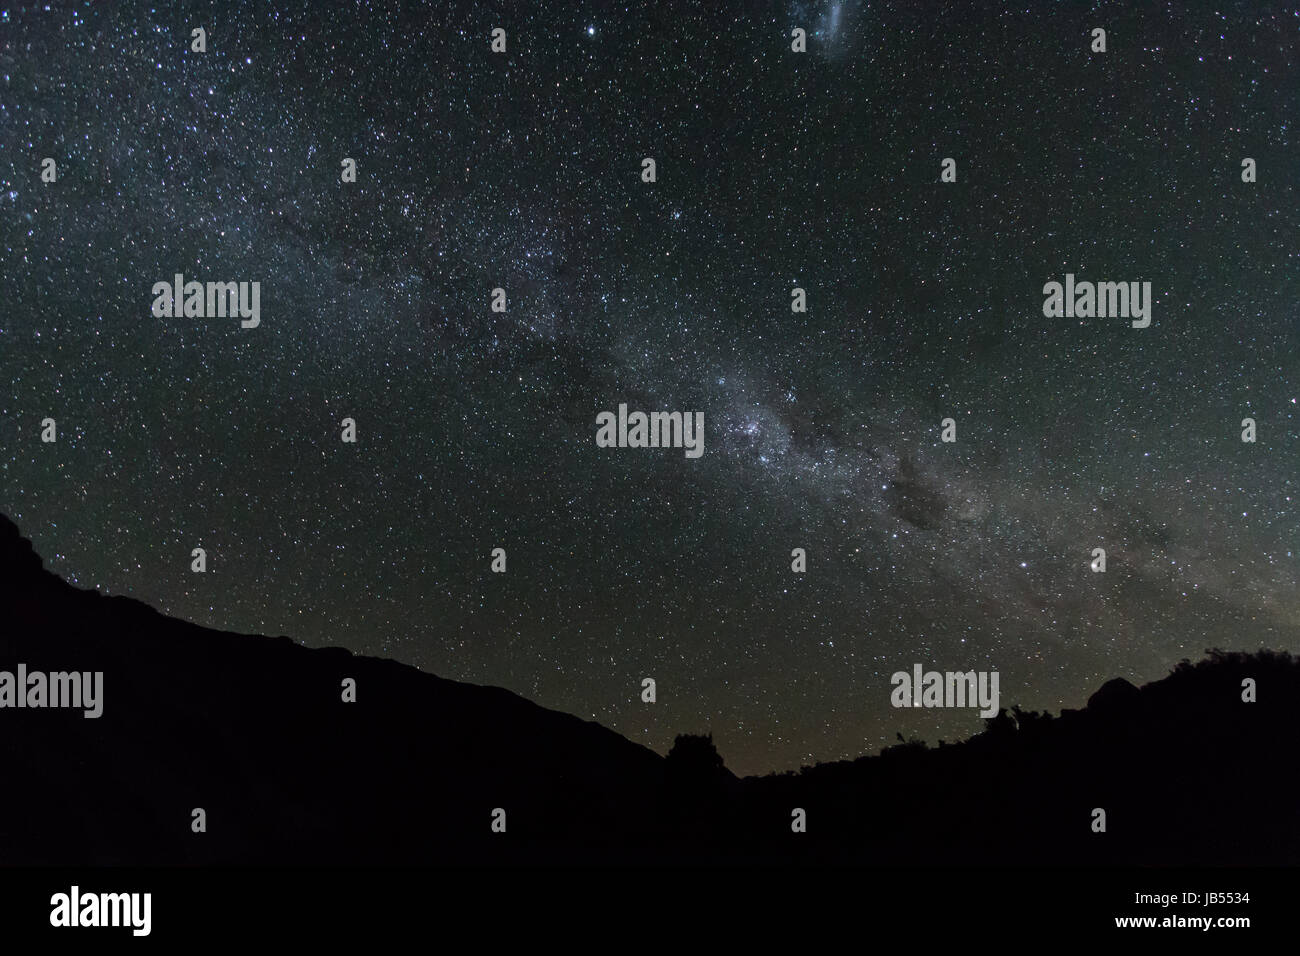 Astrophotography of the Milky Way taken in the International Dark Sky Reserve in Mount Cook National Park, New Zealand - Stock Image